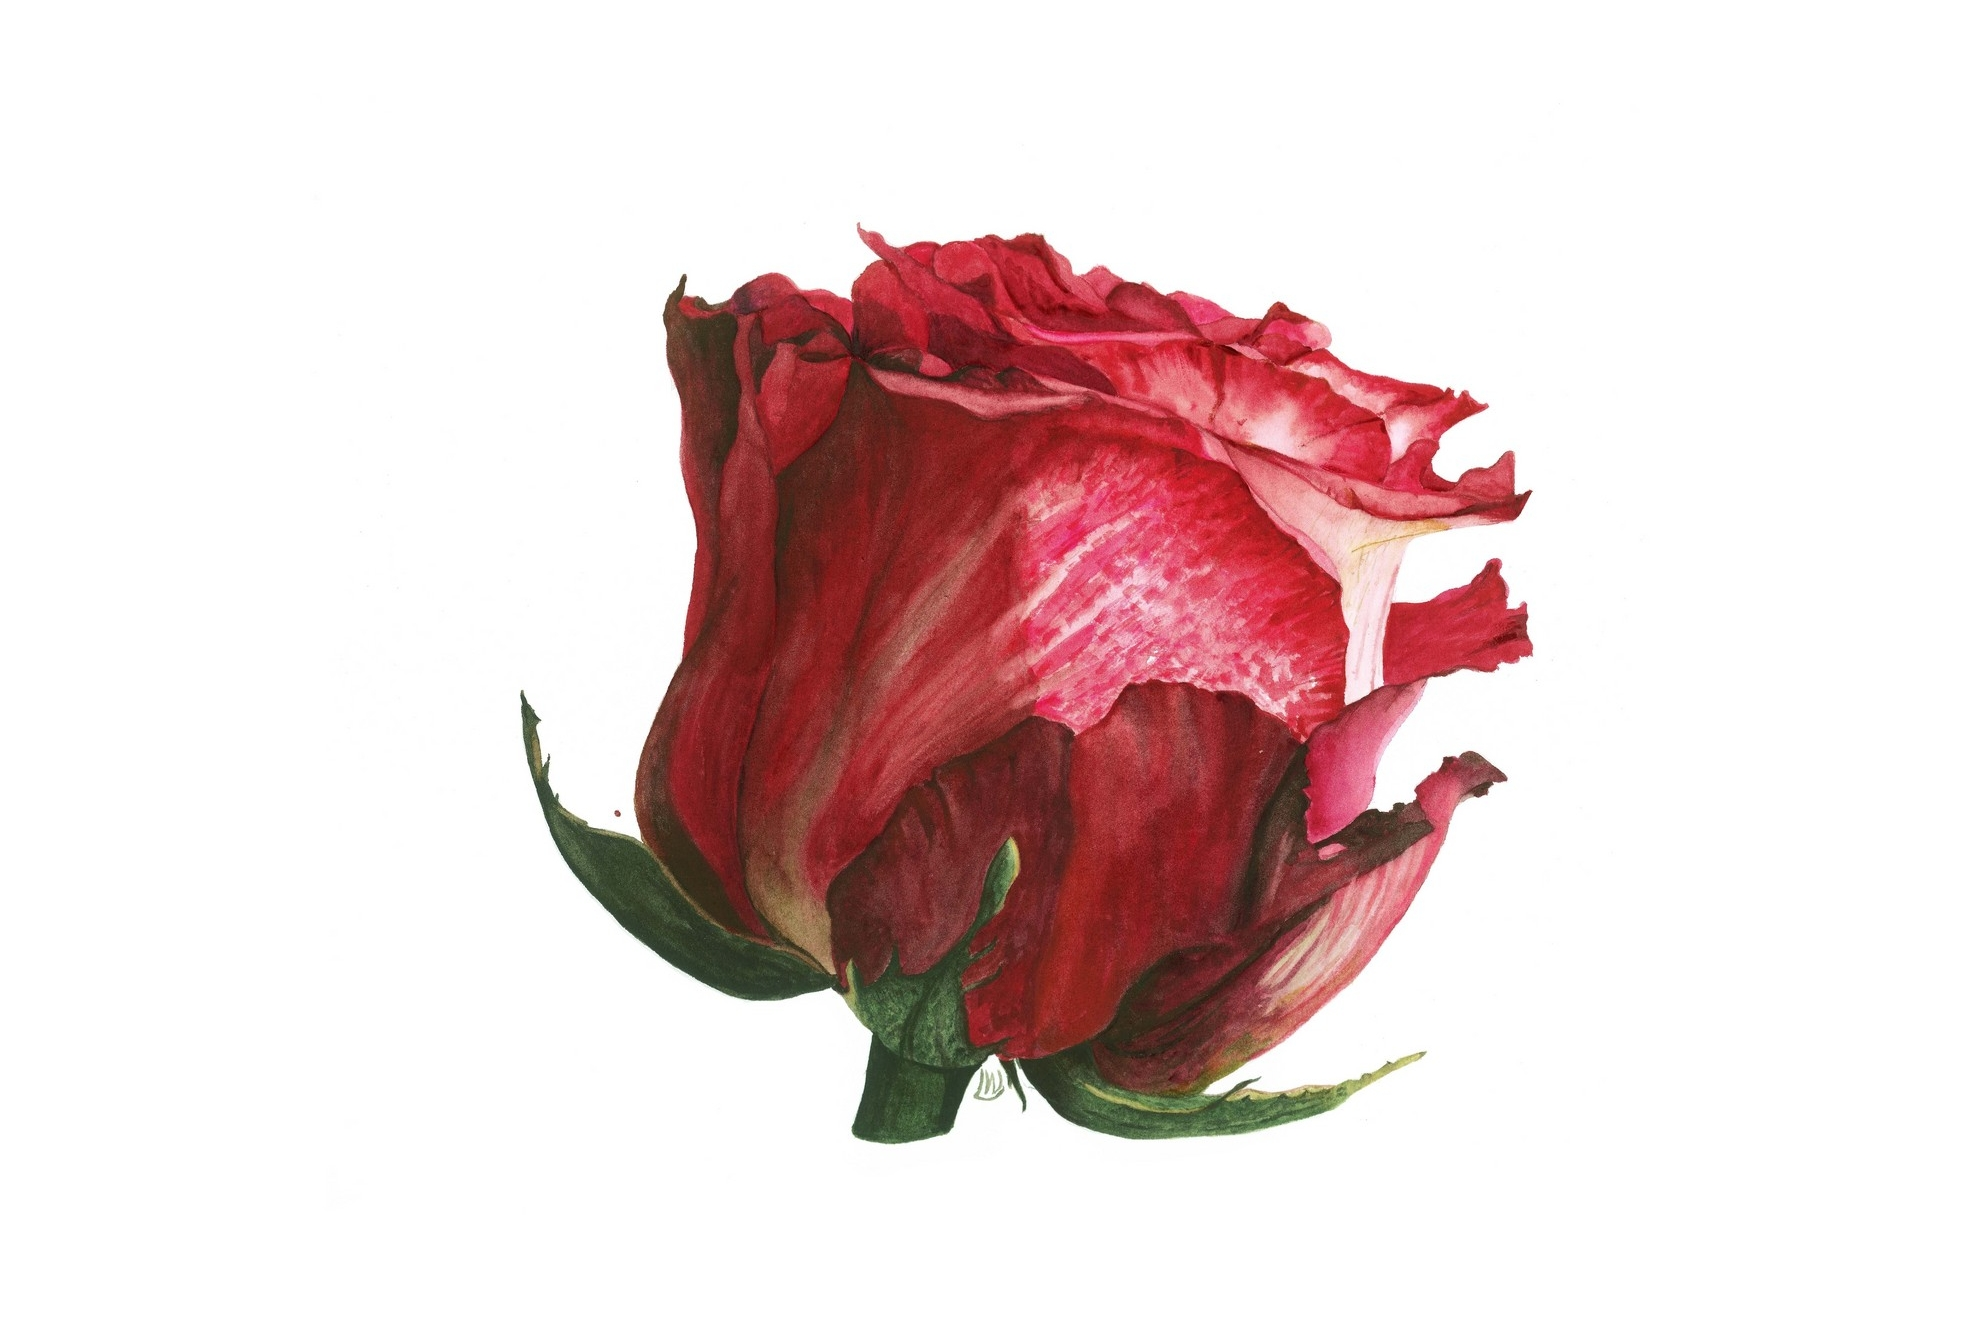 Red Rose Two, 2014